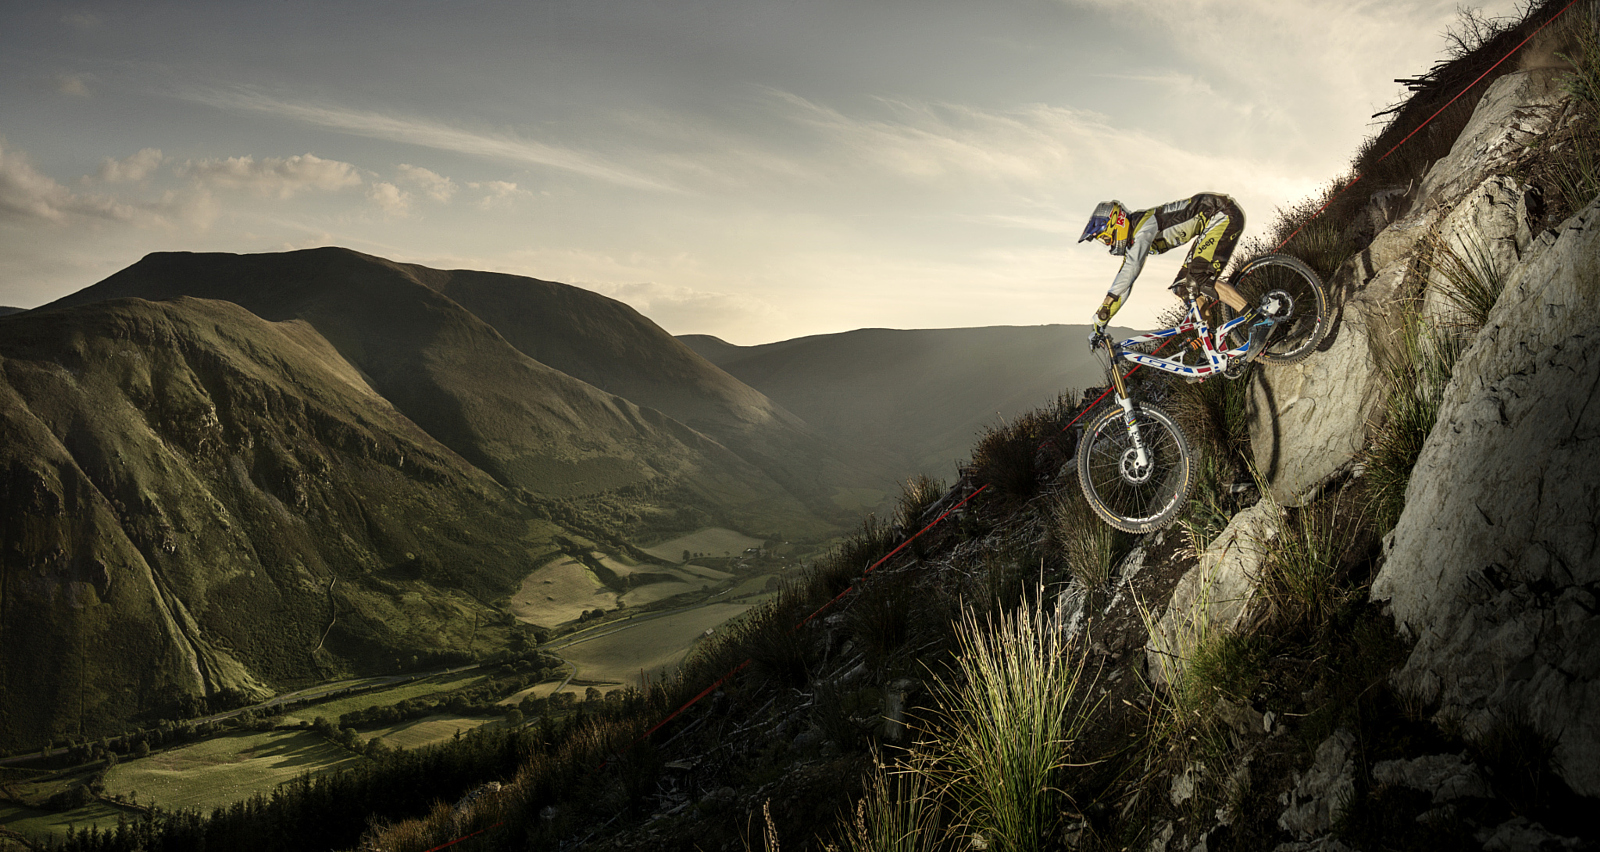 25 Exciting Action Photos That Put The Pedal To The Metal